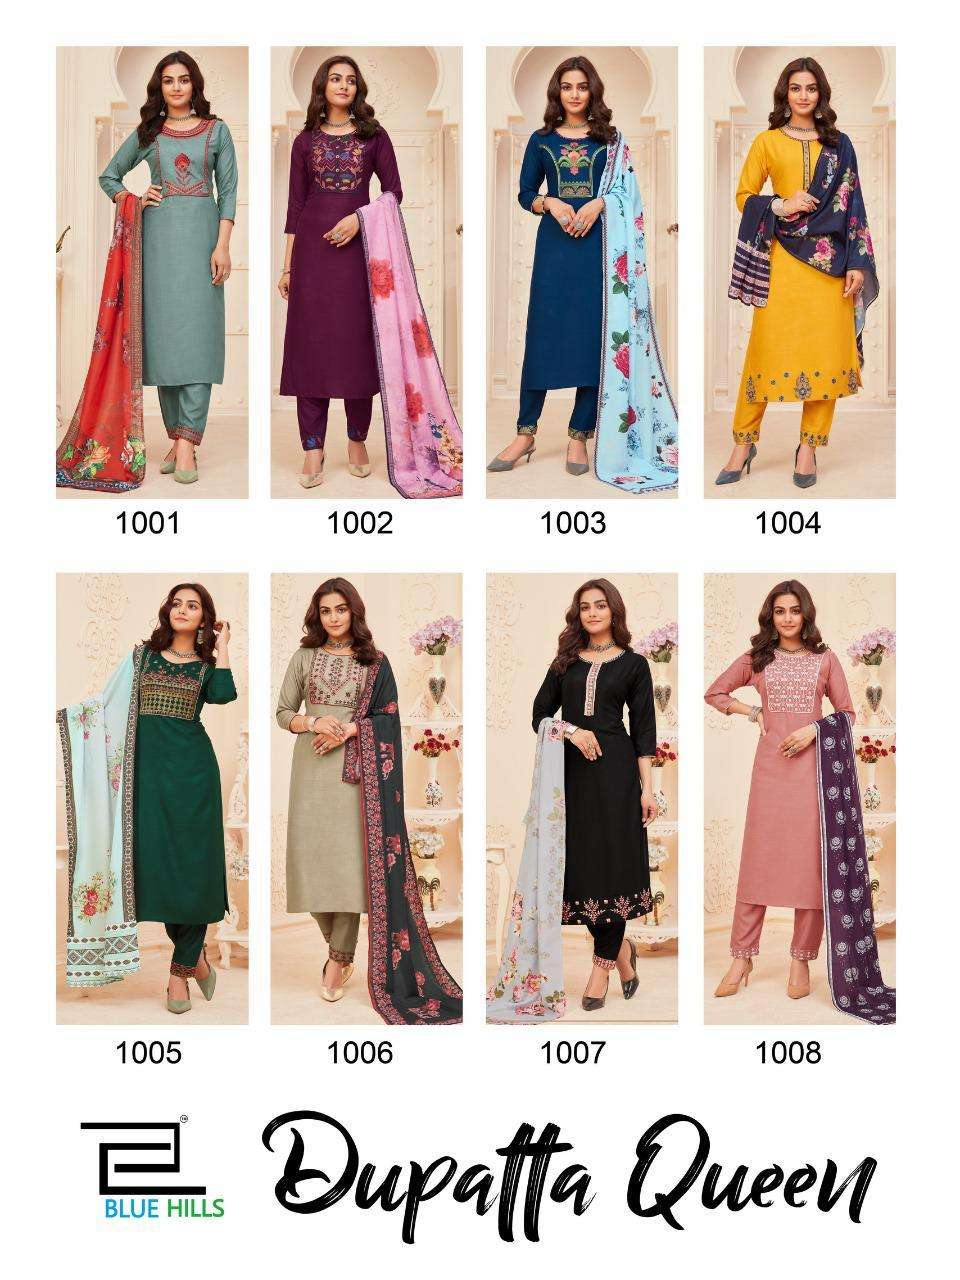 BLUE HILLS DUPATTA QUEEN VOL 1 RAYON WITH EMBROIDERY WORK KURTI WITH BOTTOM WITH DUPATTA COLLECTION